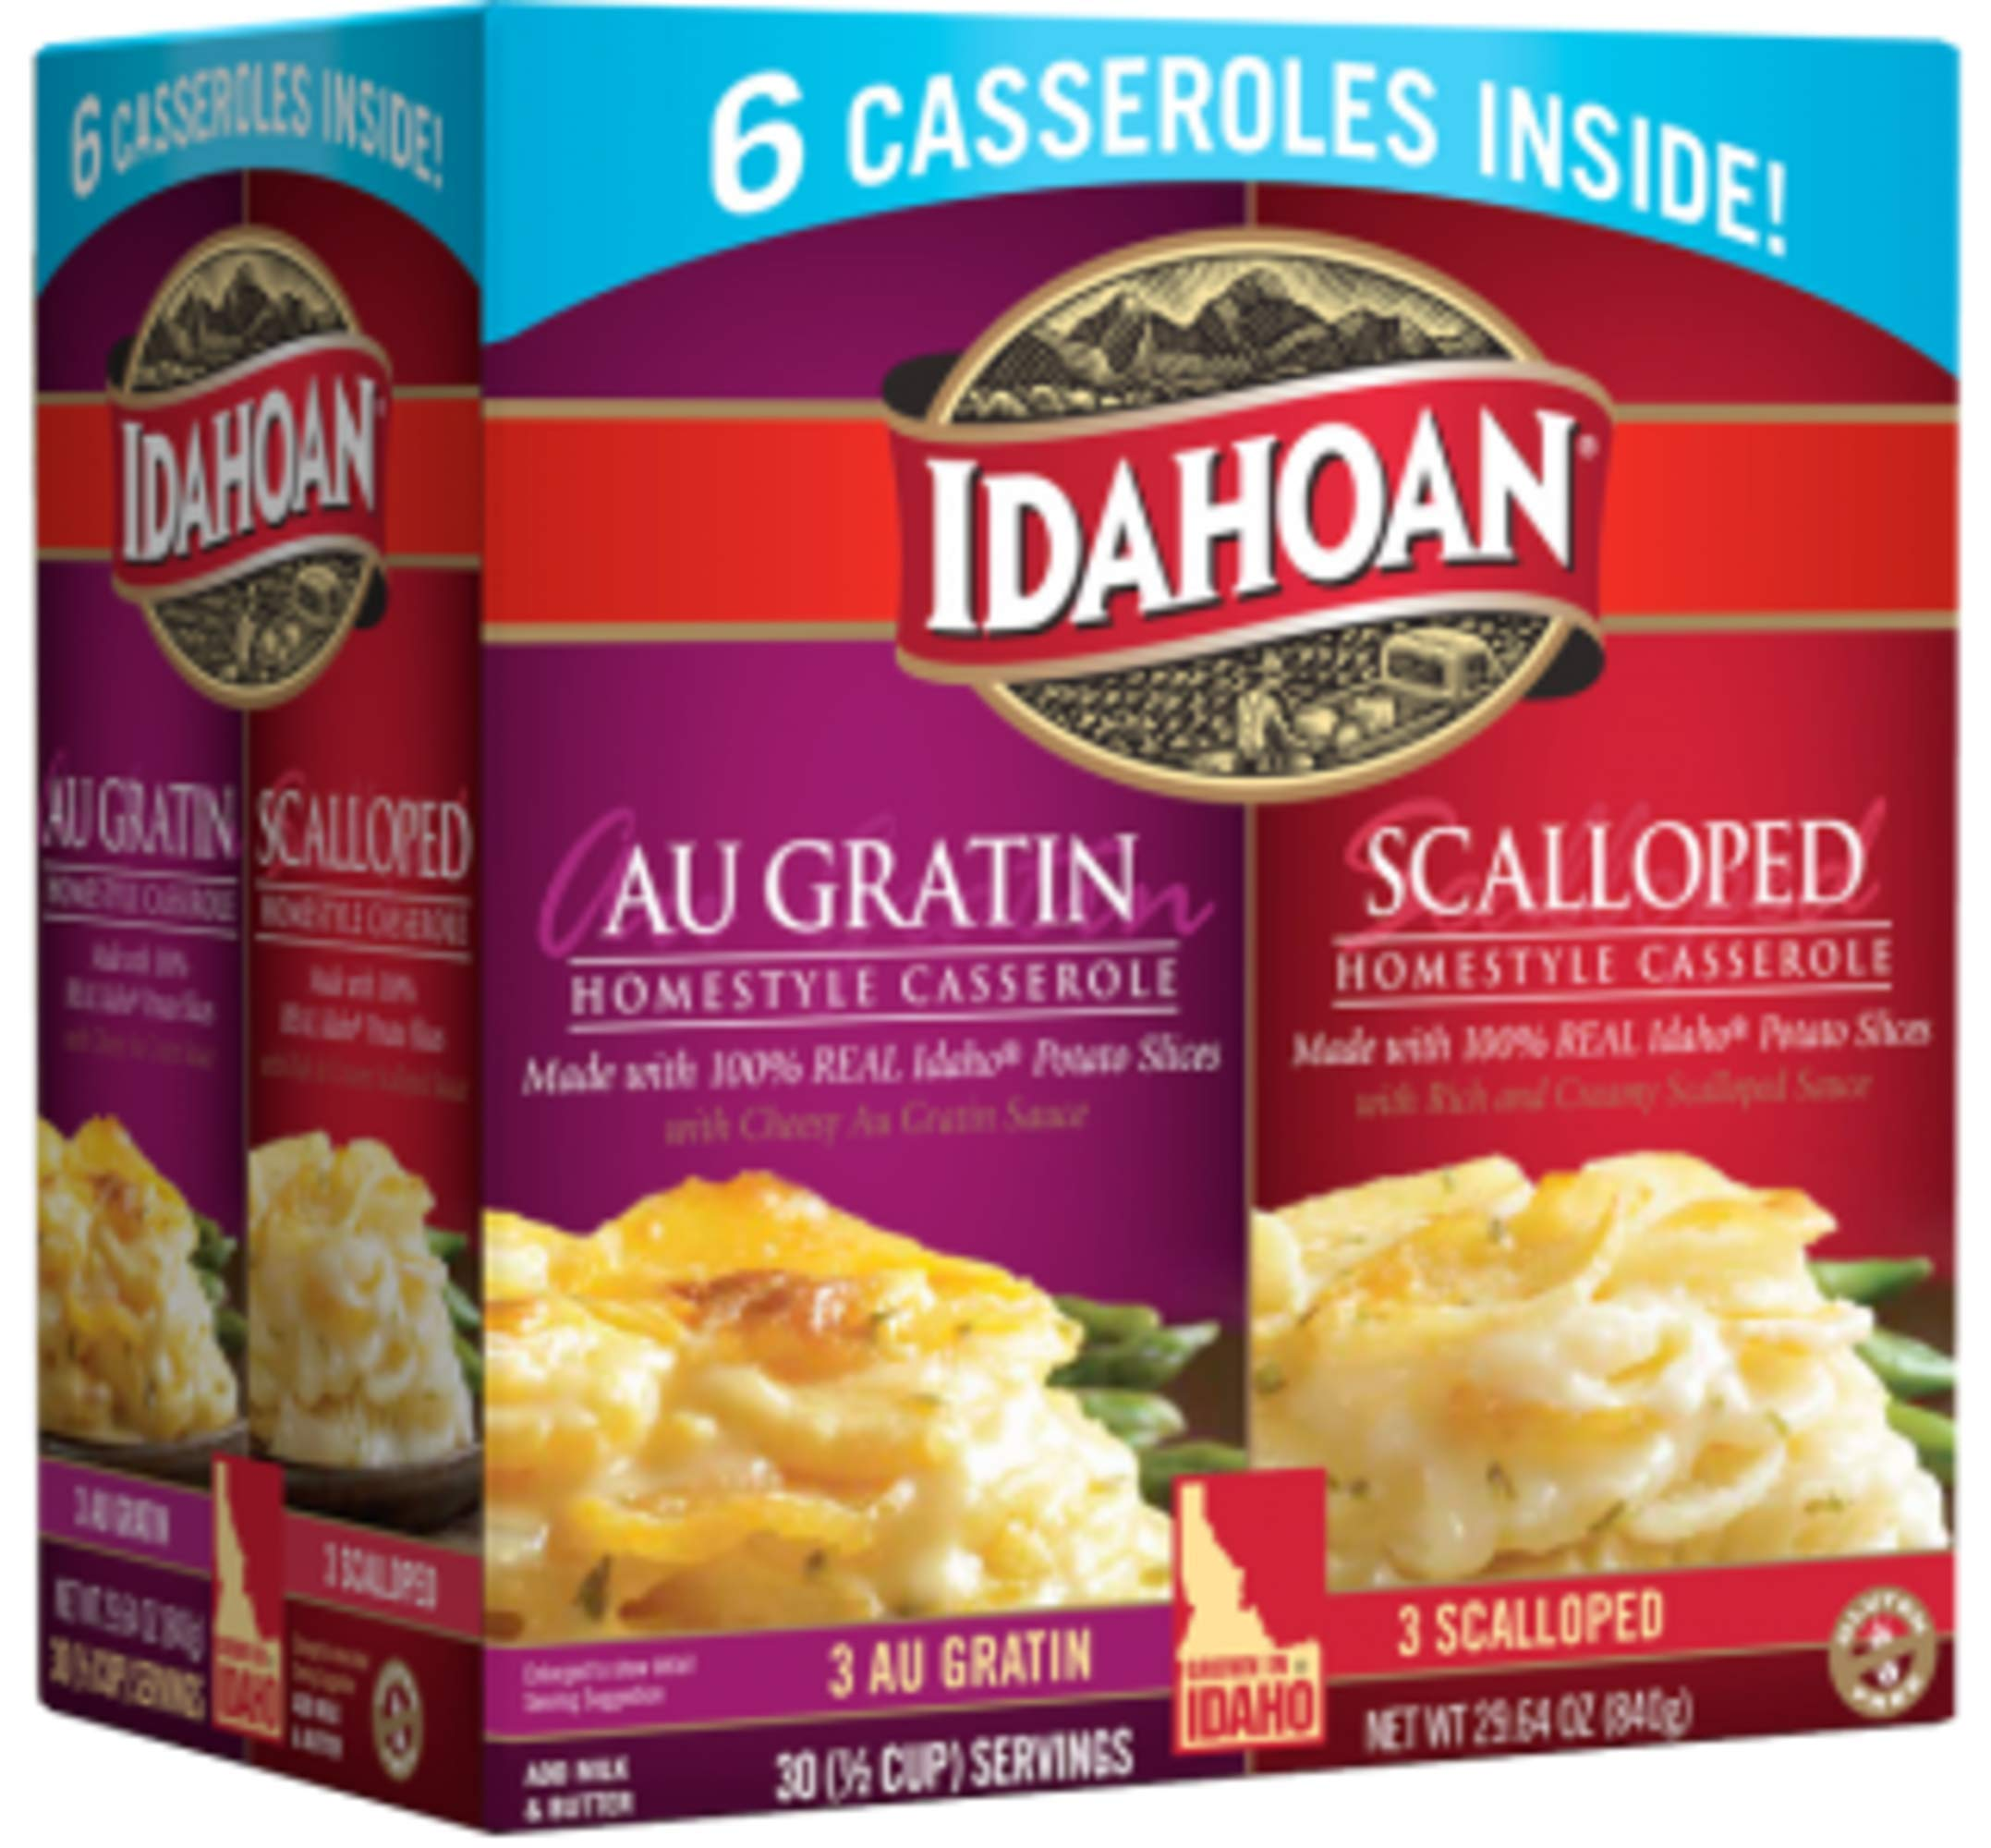 Idahoan Au Gratin and Scalloped Homestyle Casserole Potatoes, Made with Gluten-Free 100-Percent Real Idaho Potatoes, Combo Pack of 6 Boxes (5 Servings Each) by Idahoan